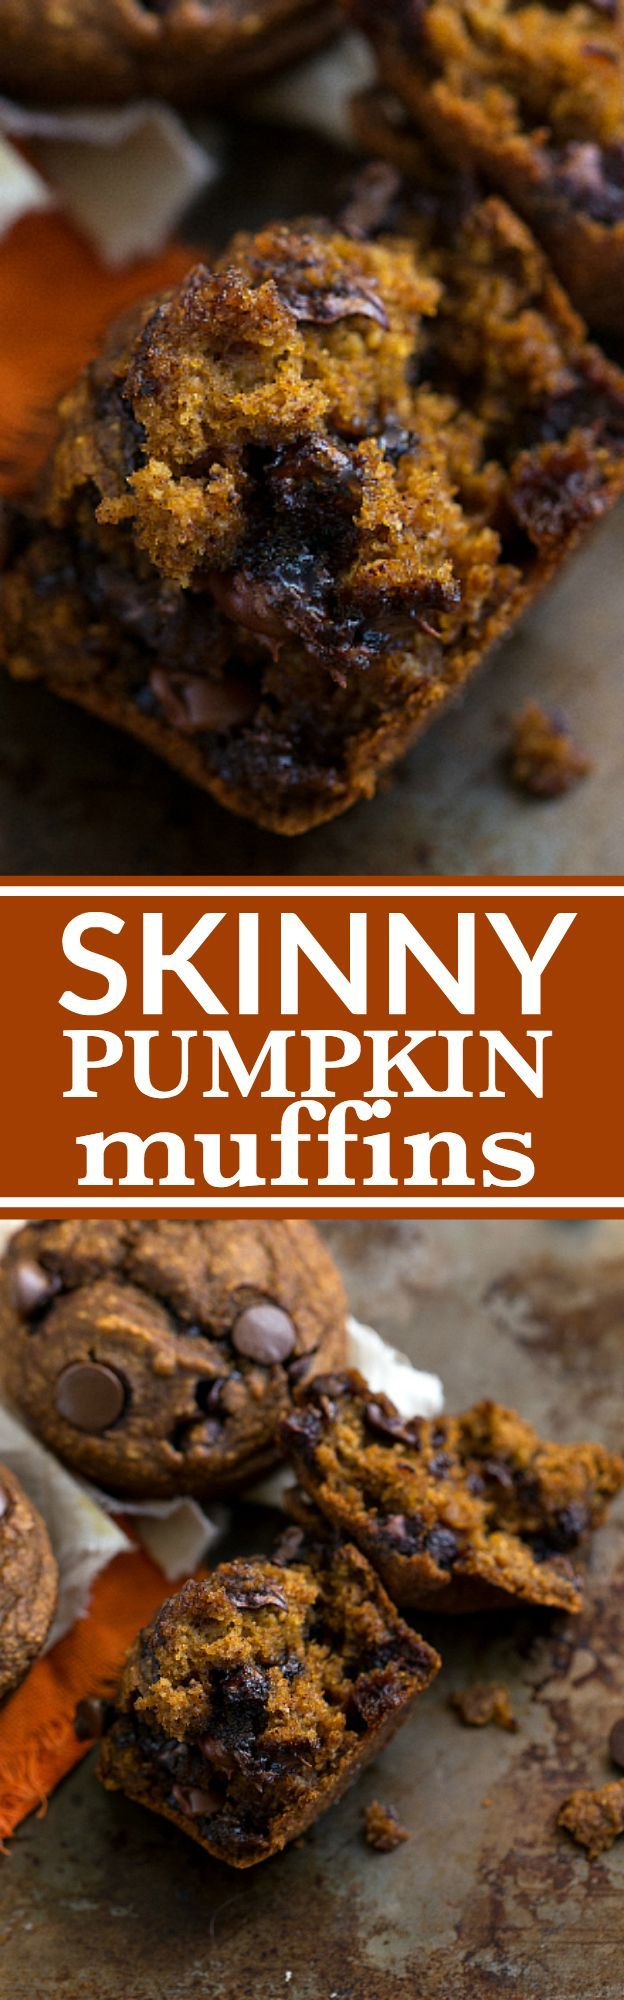 A low-calorie and healthier pumpkin chocolate-chip muffin with absolutely no butter, oil, or flour plus very little sugar. These gluten-free muffins are stuffed to the brim with flavor, they are healthy, and you will be shocked how great they taste while being so healthy! Recipe via chelseasmessyapron.com